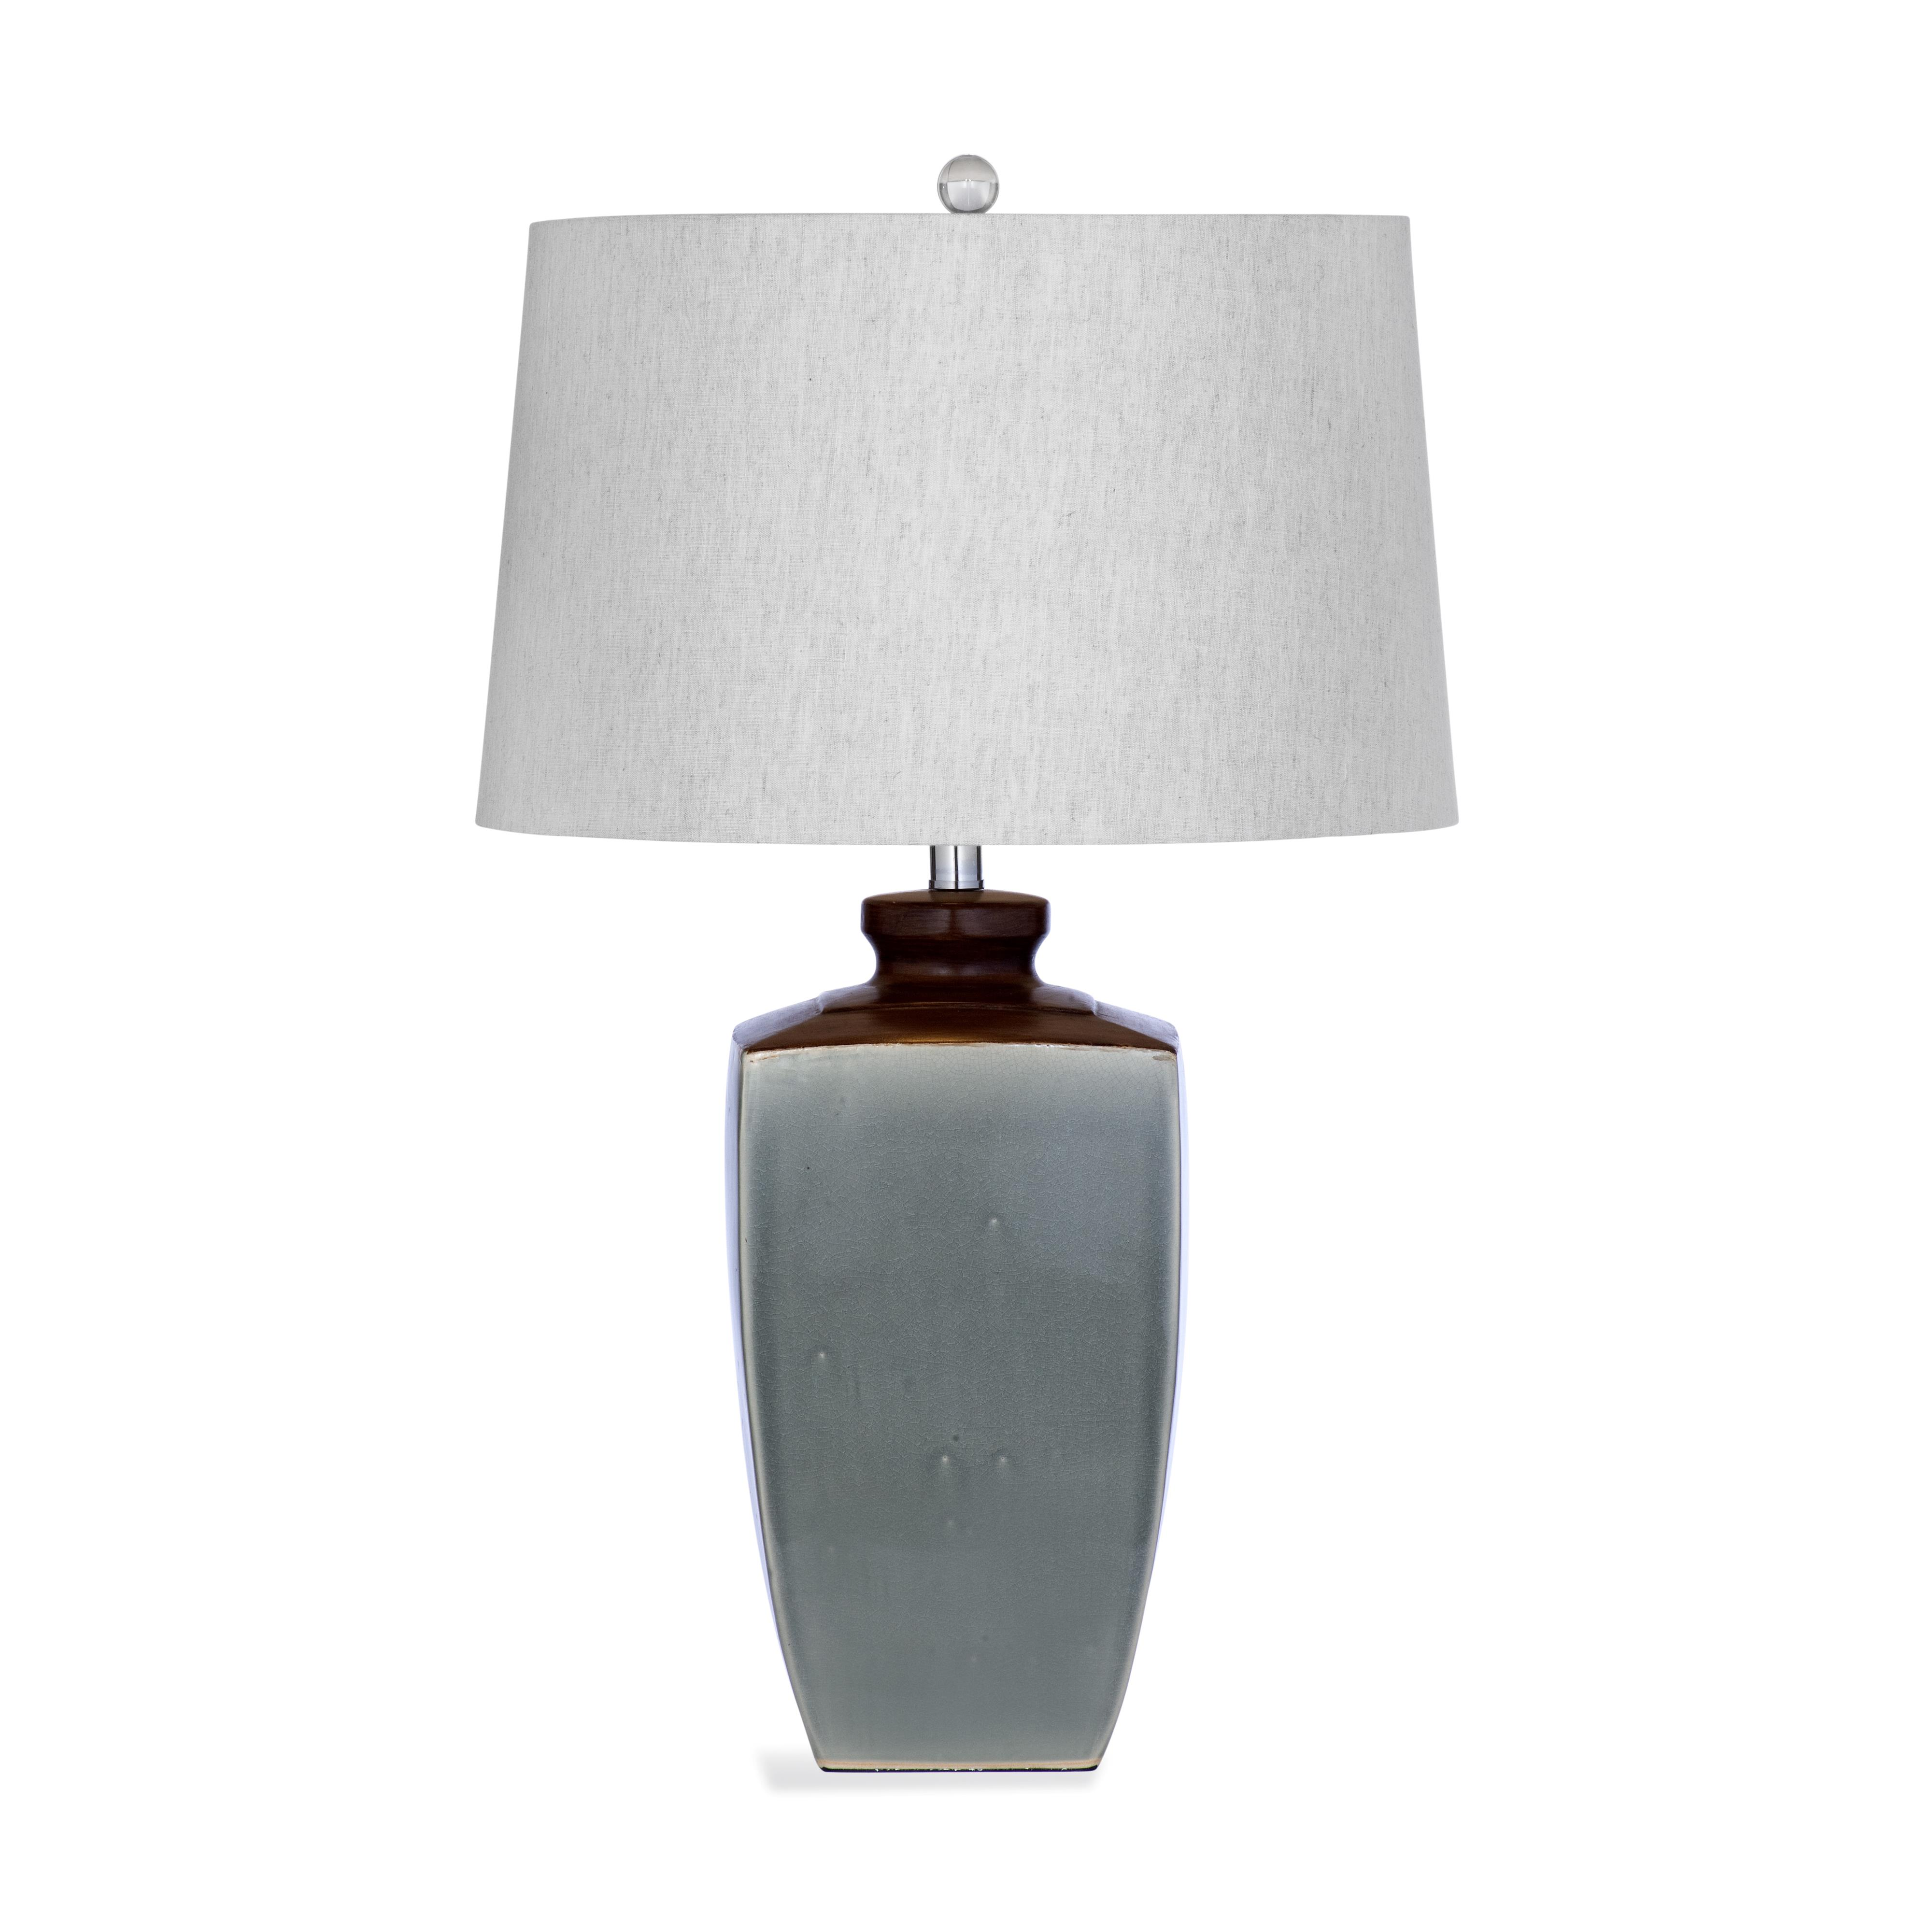 Hale Table Lamp